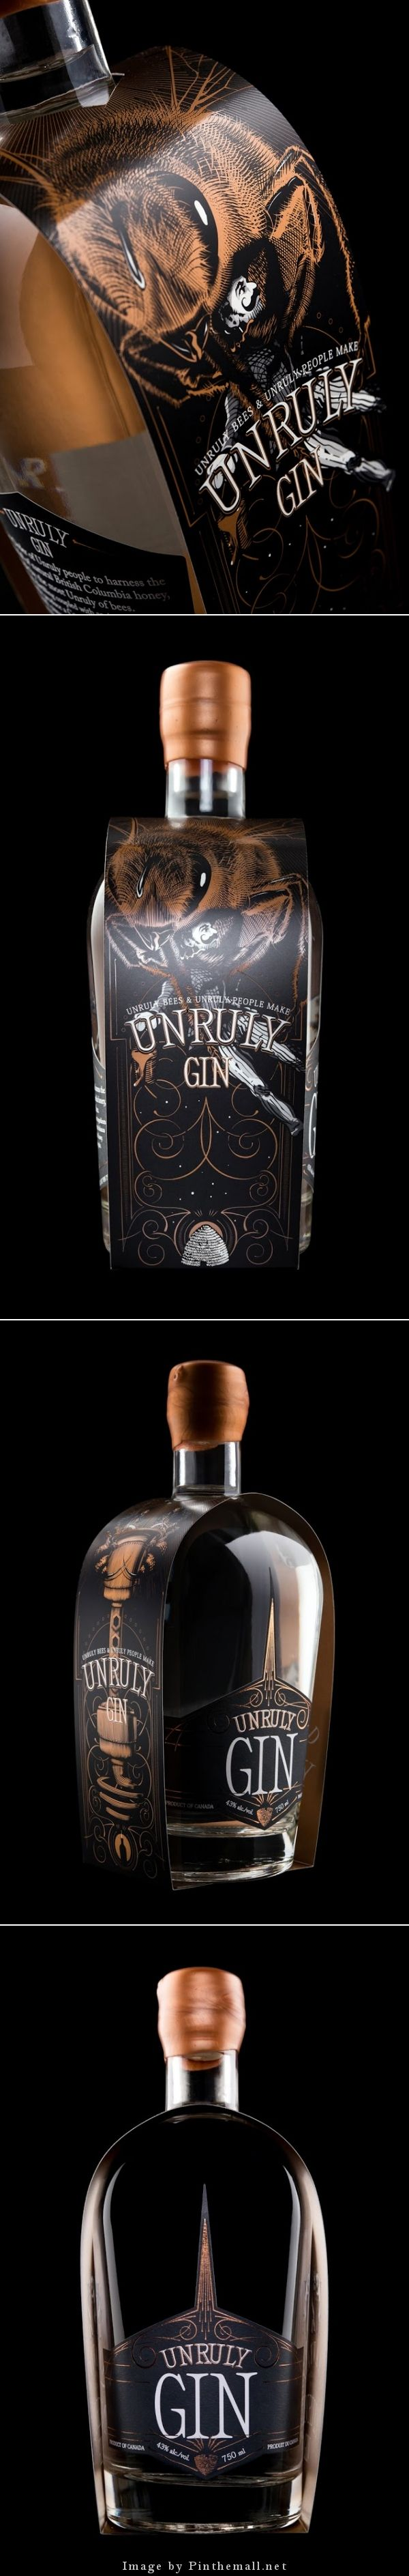 128 best craft spirits images on pinterest packaging design unruly vodka and unruly gin malvernweather Choice Image